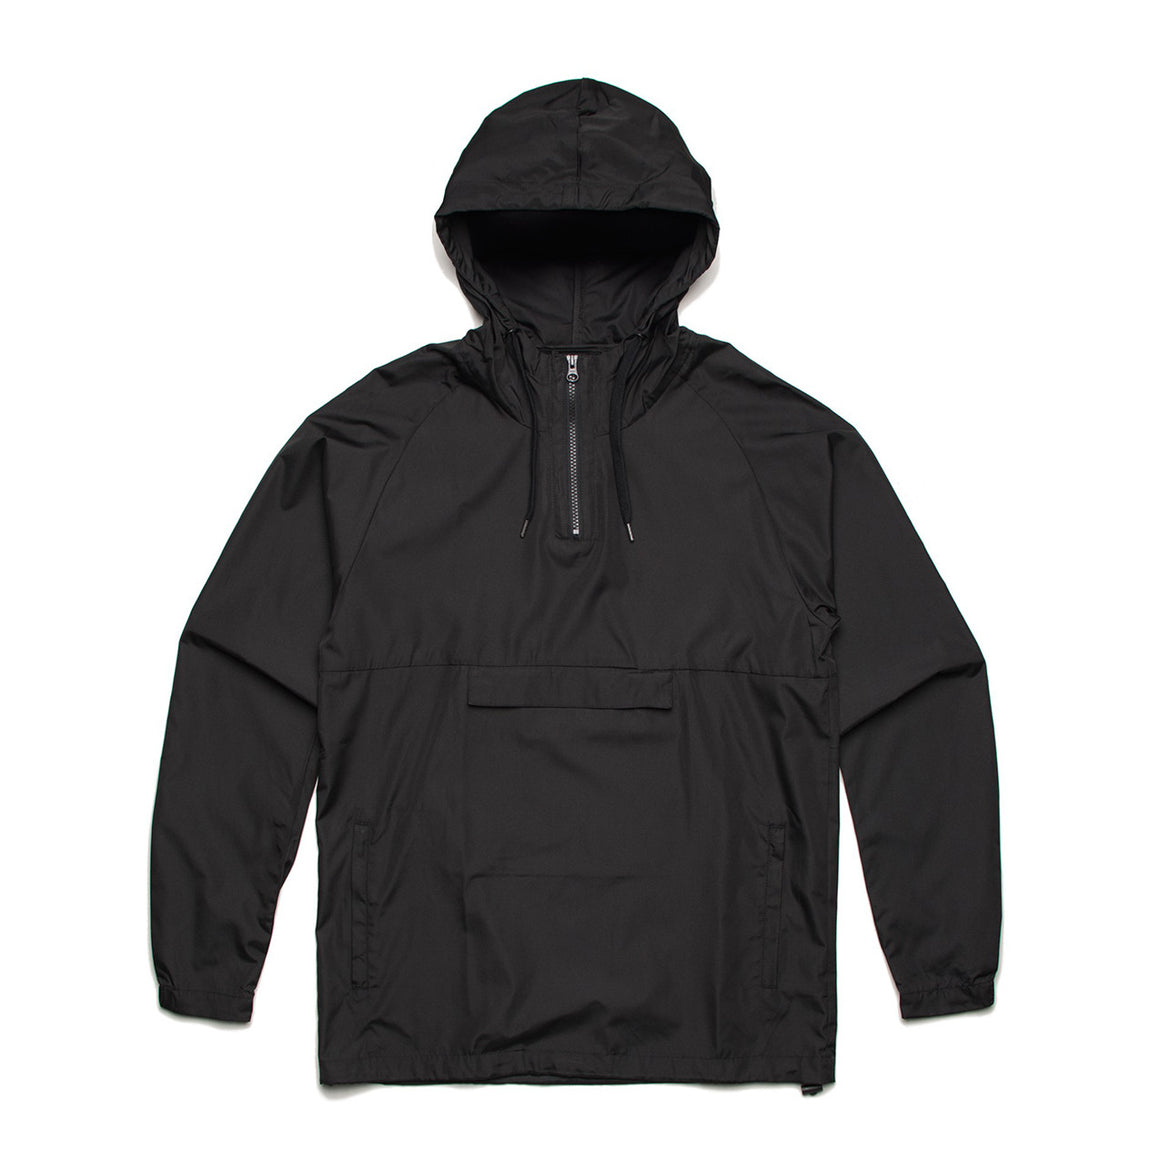 Fifty5 Clothing Premium Windbreaker